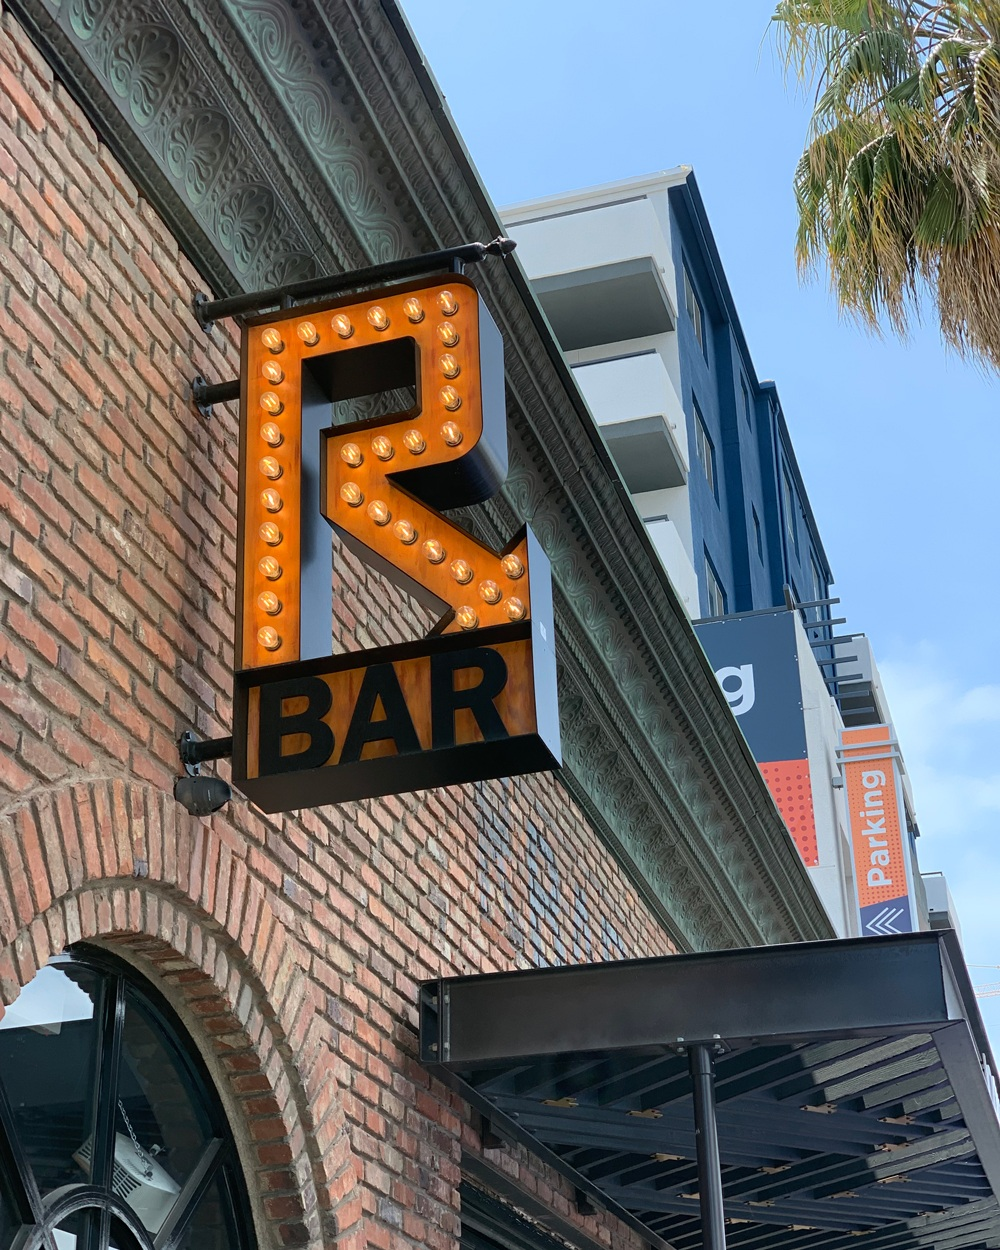 R Bar Celebrates a Year of Local Love - The hospitality is so real, you'll feel the love.